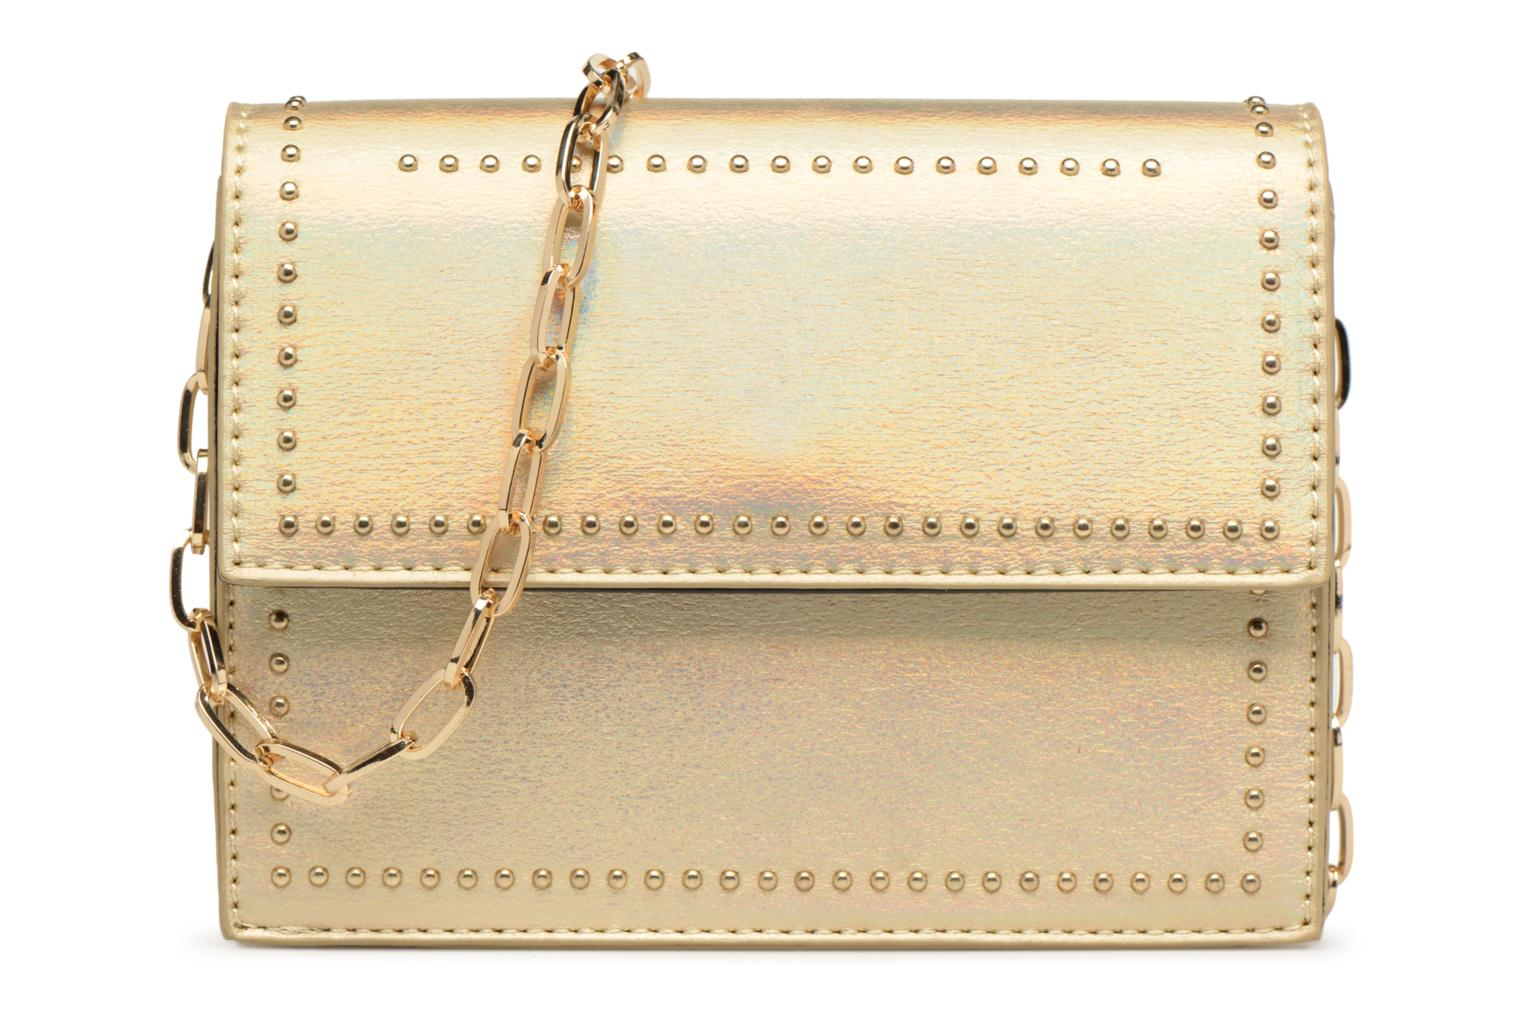 Gold Street Mettalic chainstrap Level crossbody Ugfvq80w